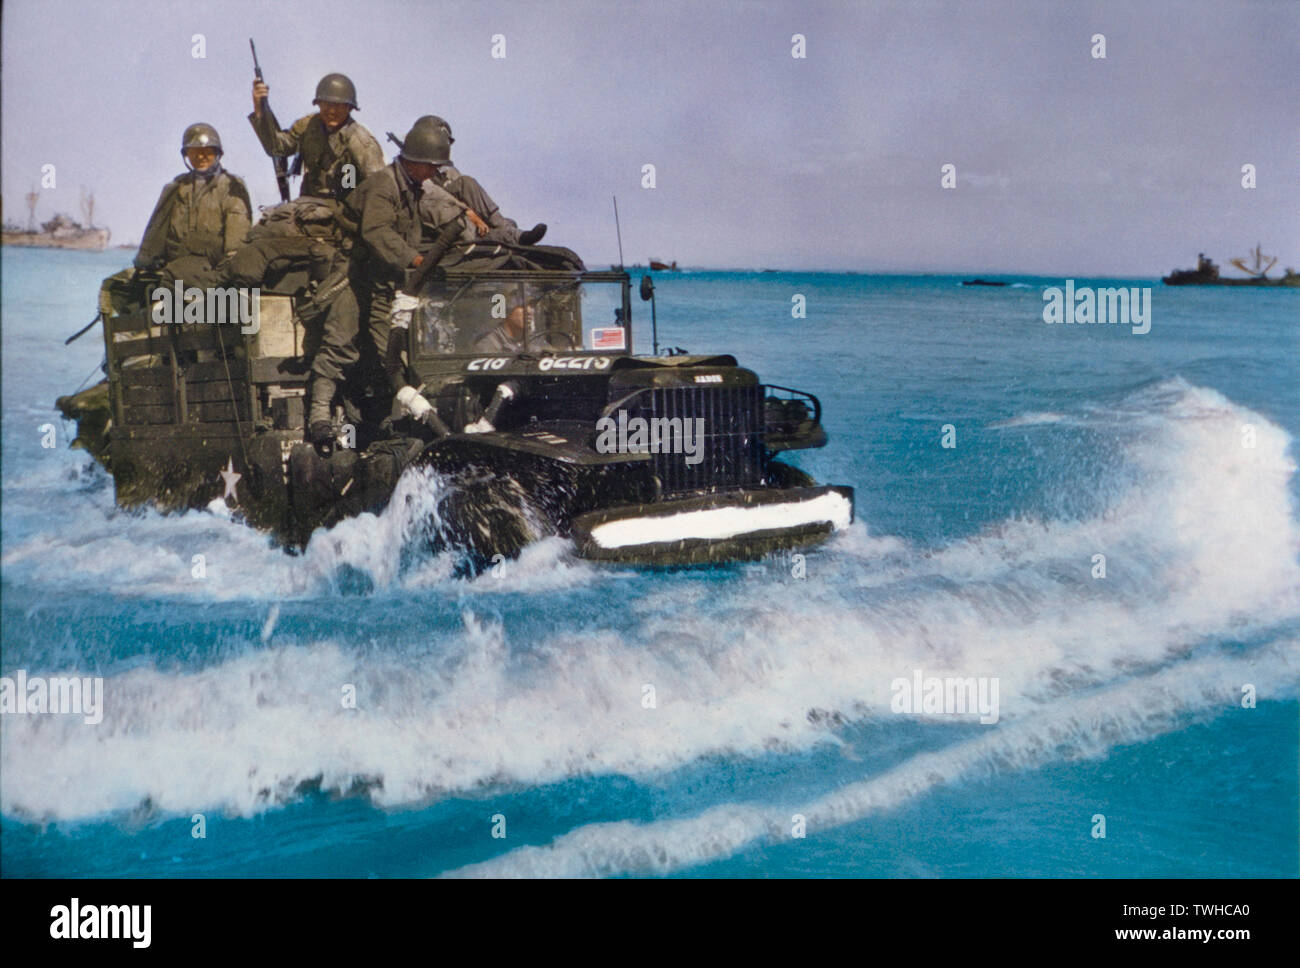 U.S. Military Truck with Soldiers driving through water toward shore during Invasion of Normandy, France, June 1944 Stock Photo